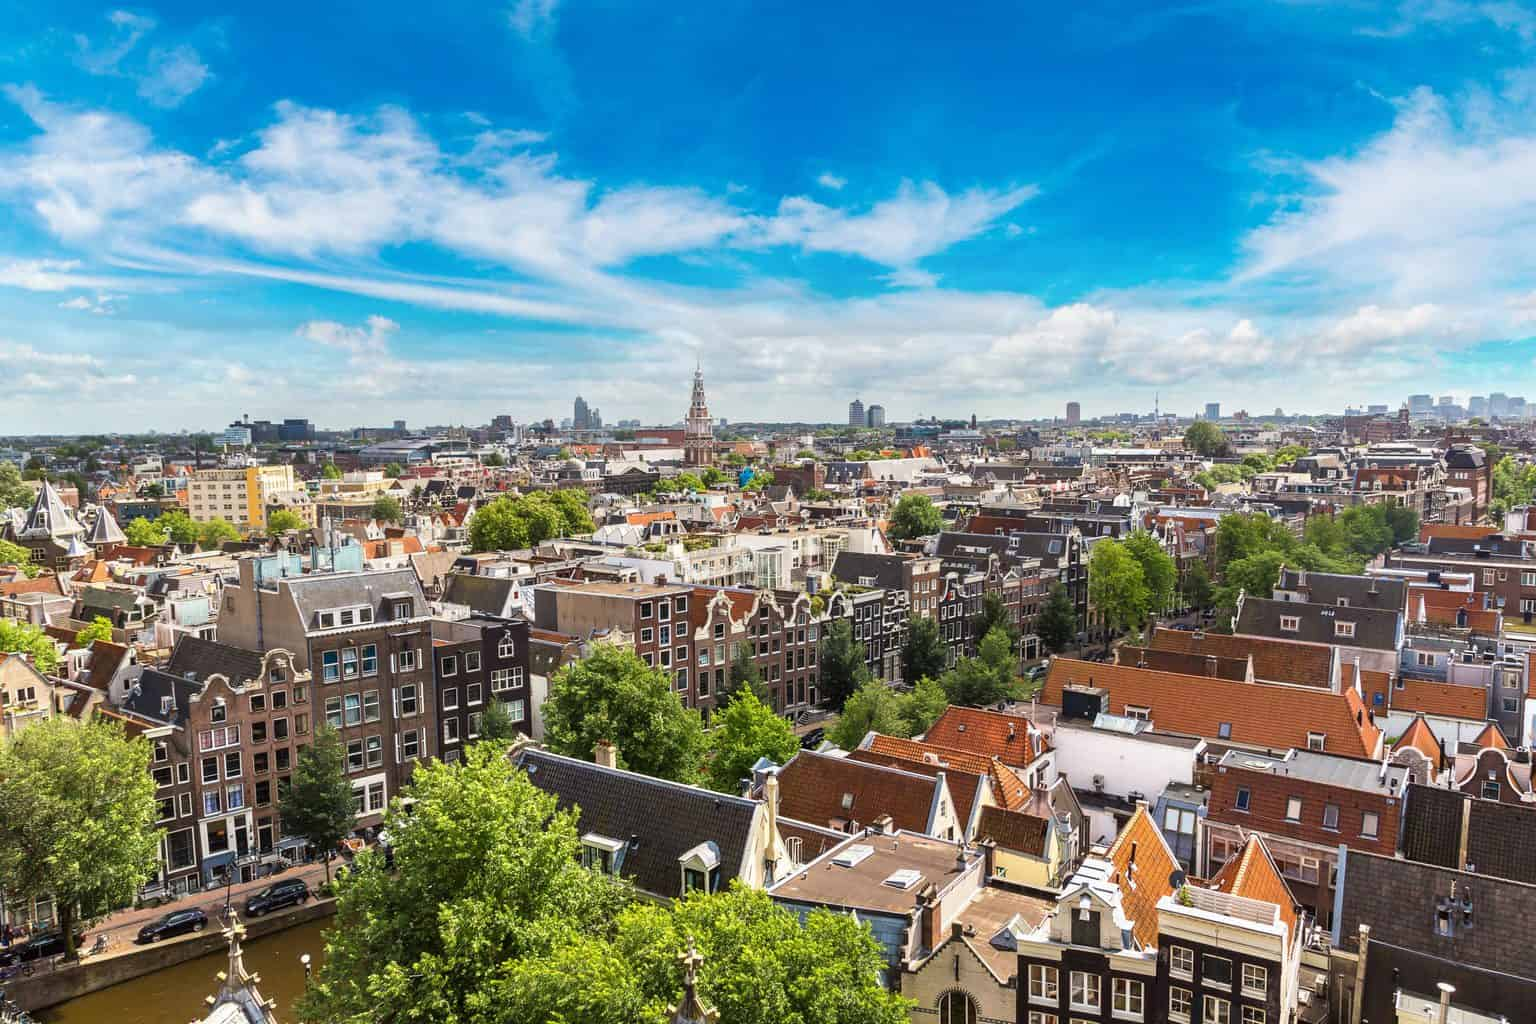 An aerial view of Amsterdam from the Volkshotel.